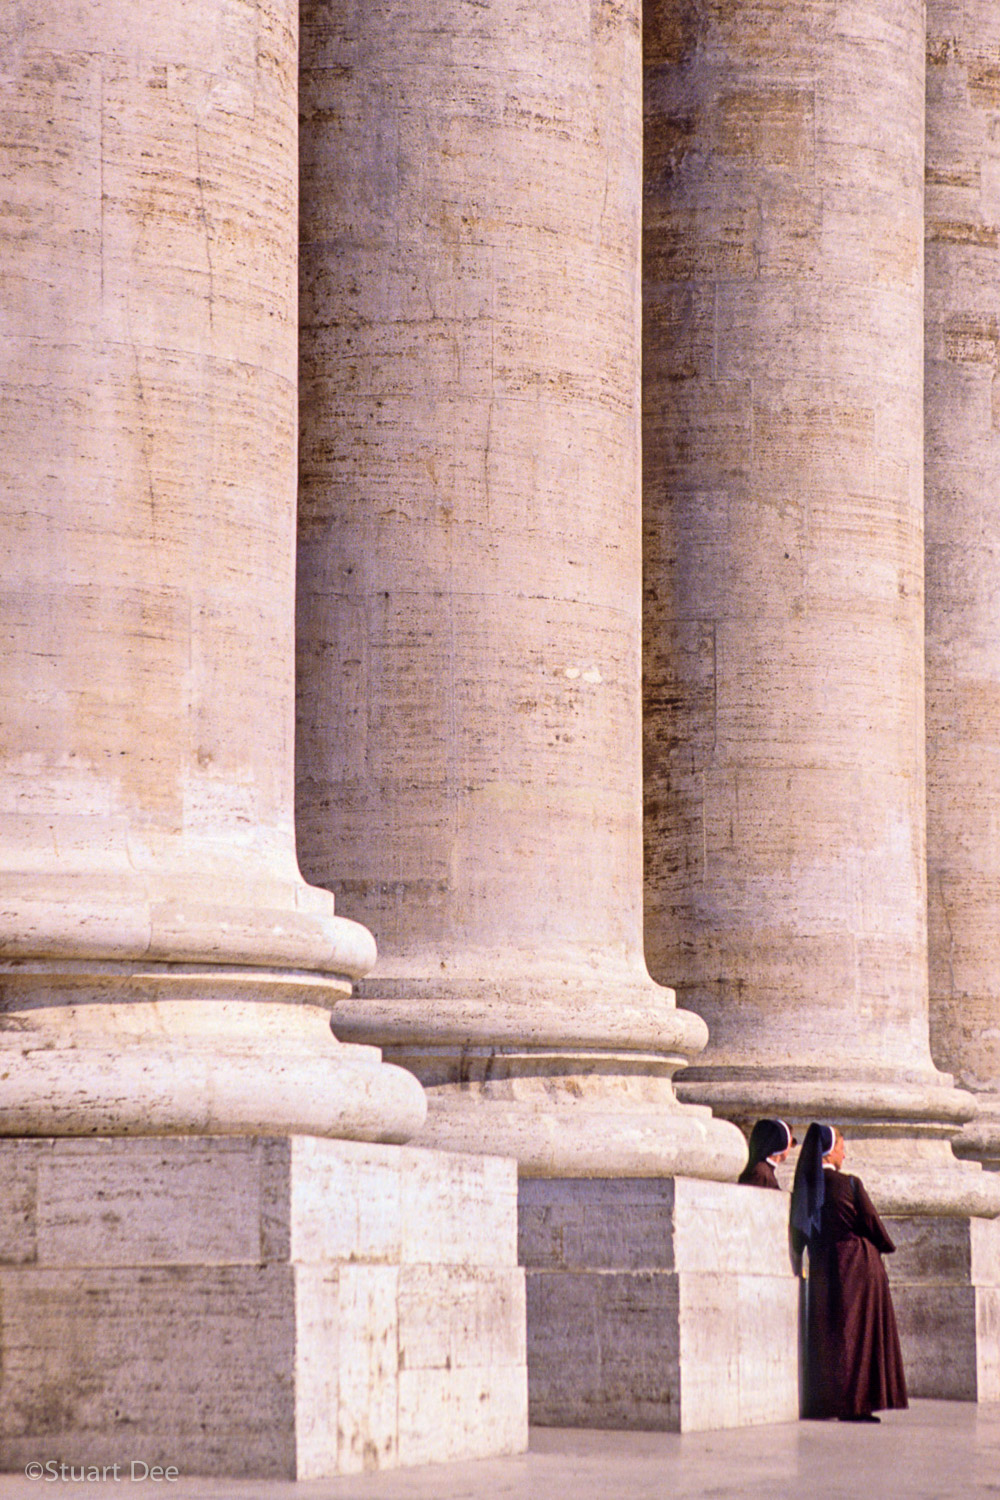 Nuns and Columns, St. Peter's , Rome, Italy